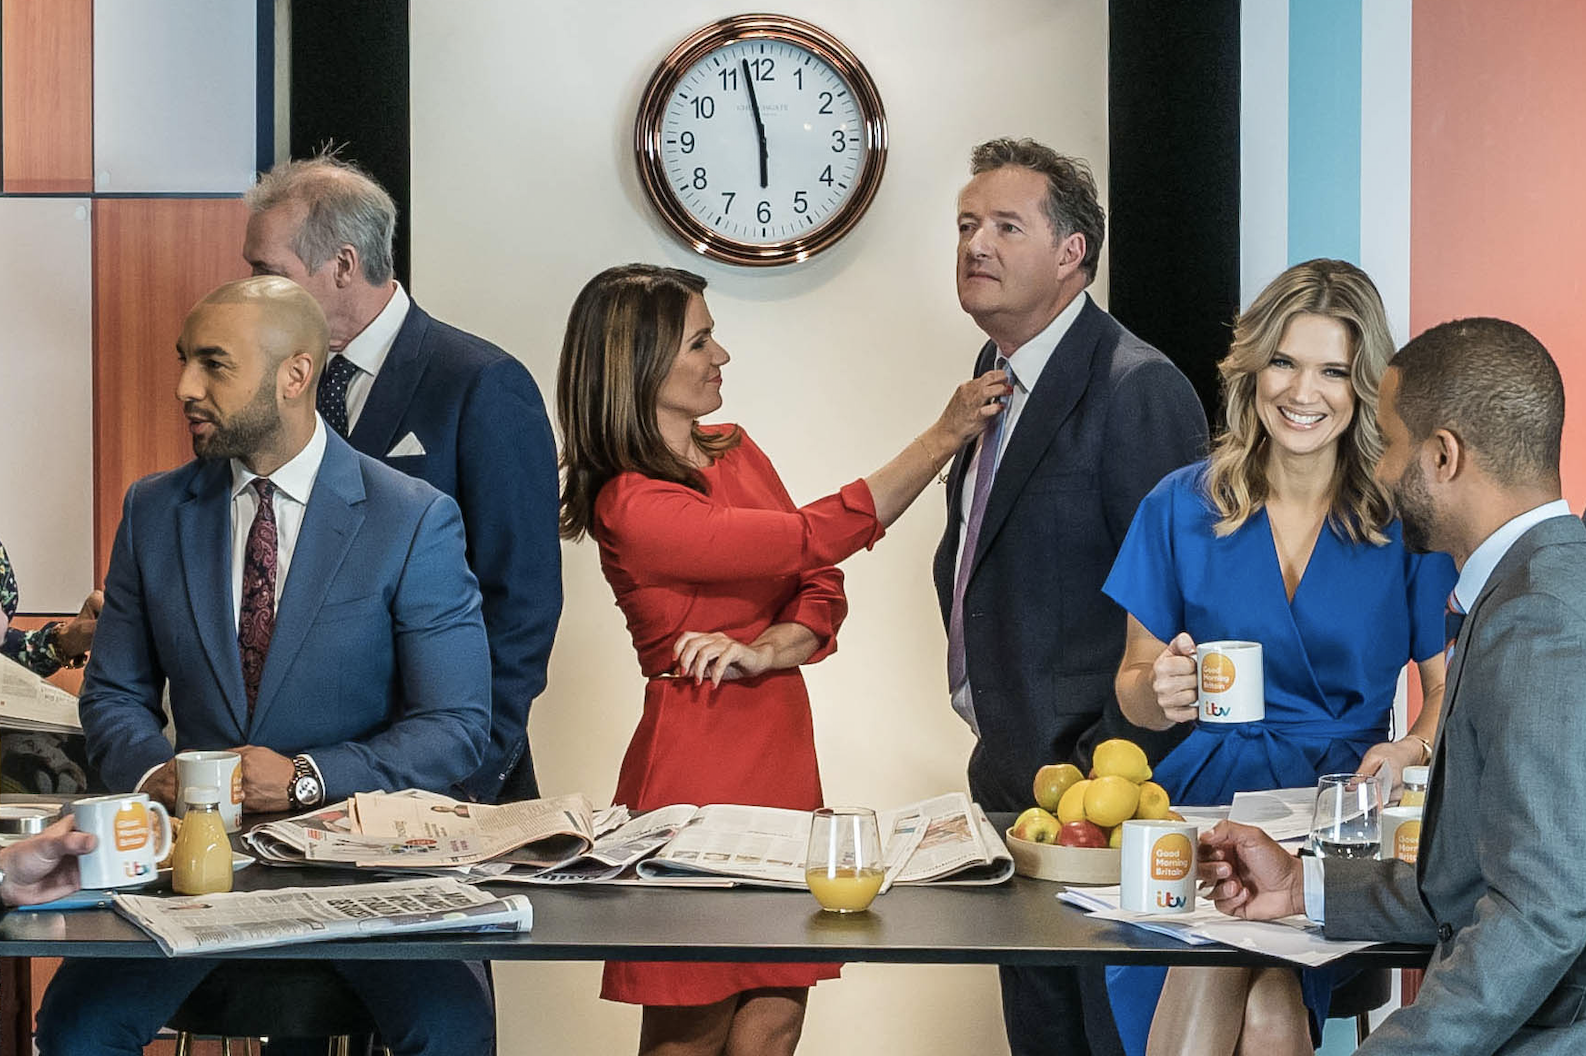 Holly Willoughby, Phillip Schofield and Piers Morgan get ready for the morning in new ITV daytime promo